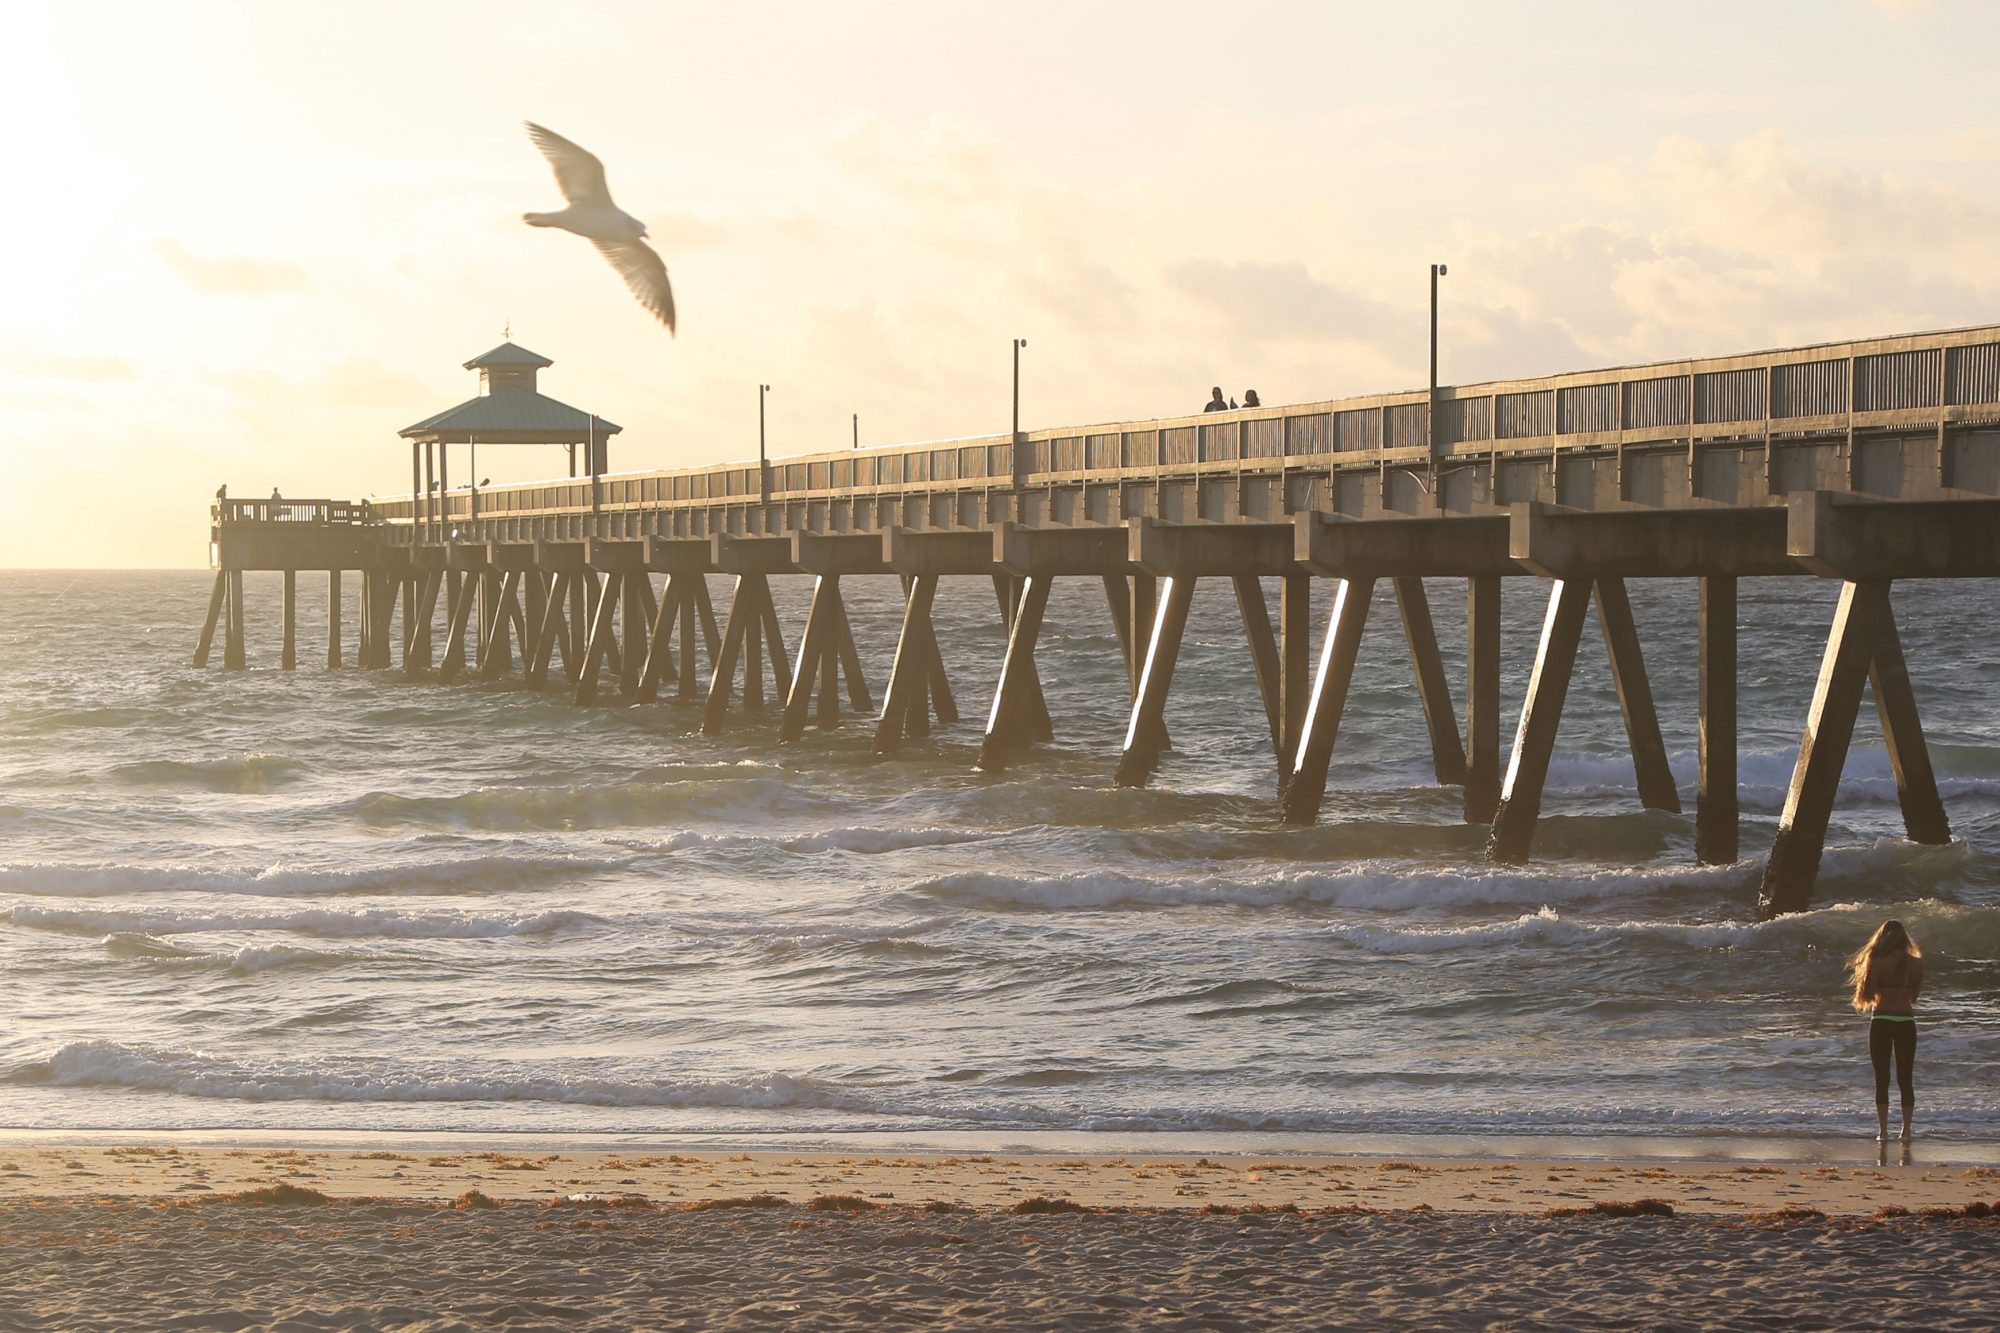 Nestled on Florida's sun-soaked southeast coast between Miami and Palm Beach, Deerfield offers an understated break from the glitz and glamour cities along this stretch of coastline are known for. Laidback beach vibes rule here, and homes just a...